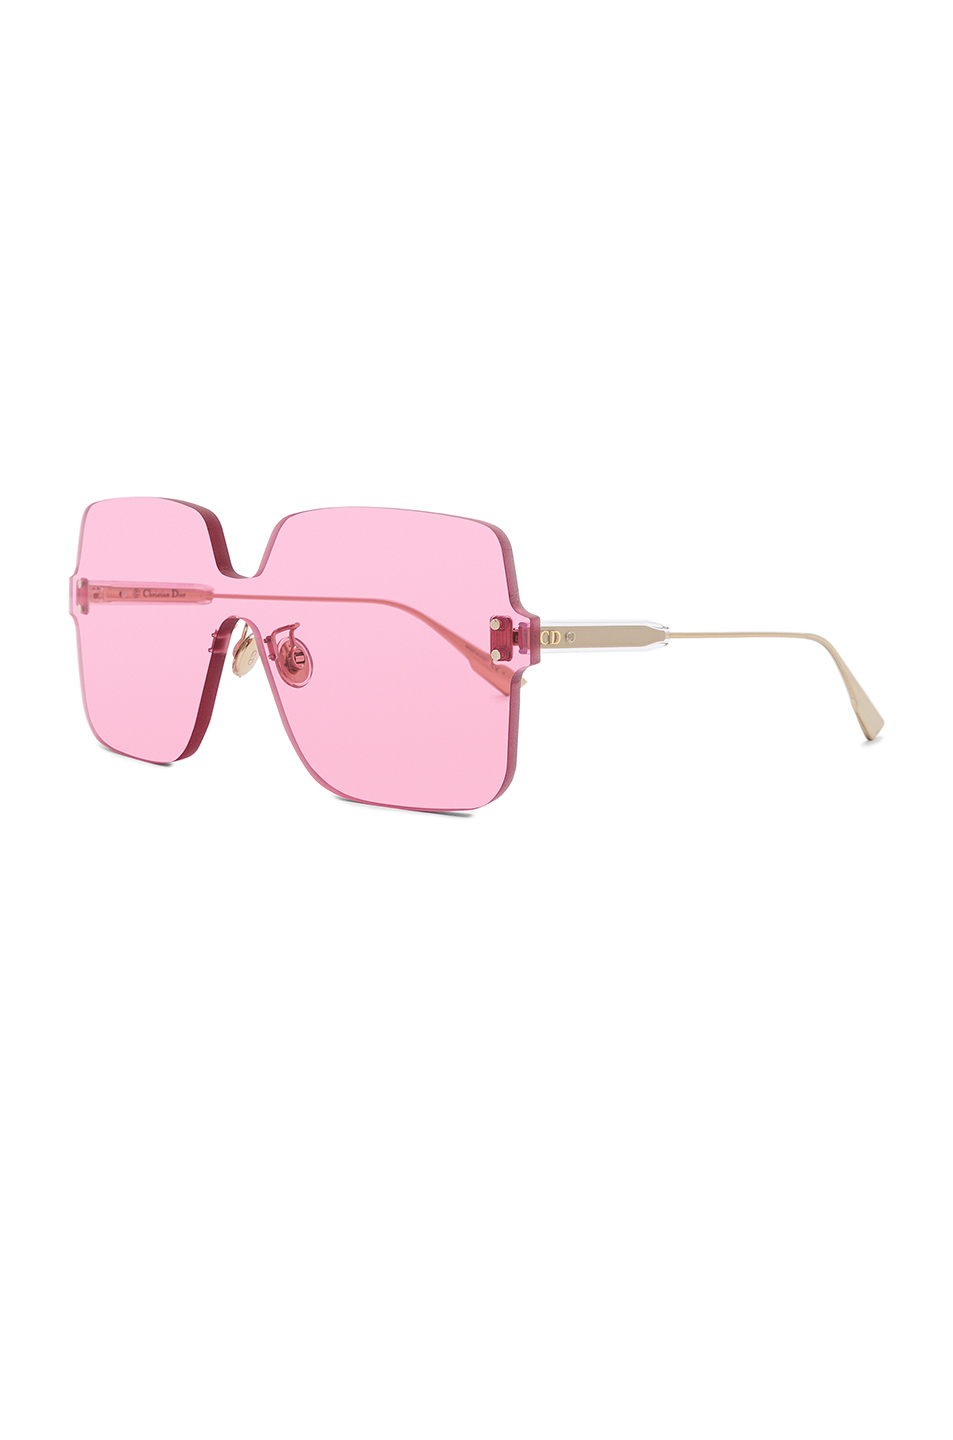 0ca03e1f3a Buy Original Dior Color Quake 1 Sunglasses at Indonesia